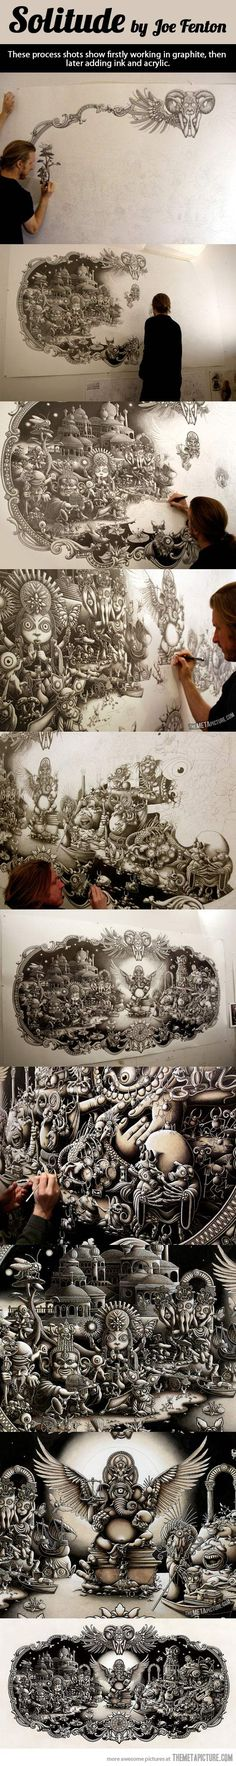 Process shots of awesome mural…